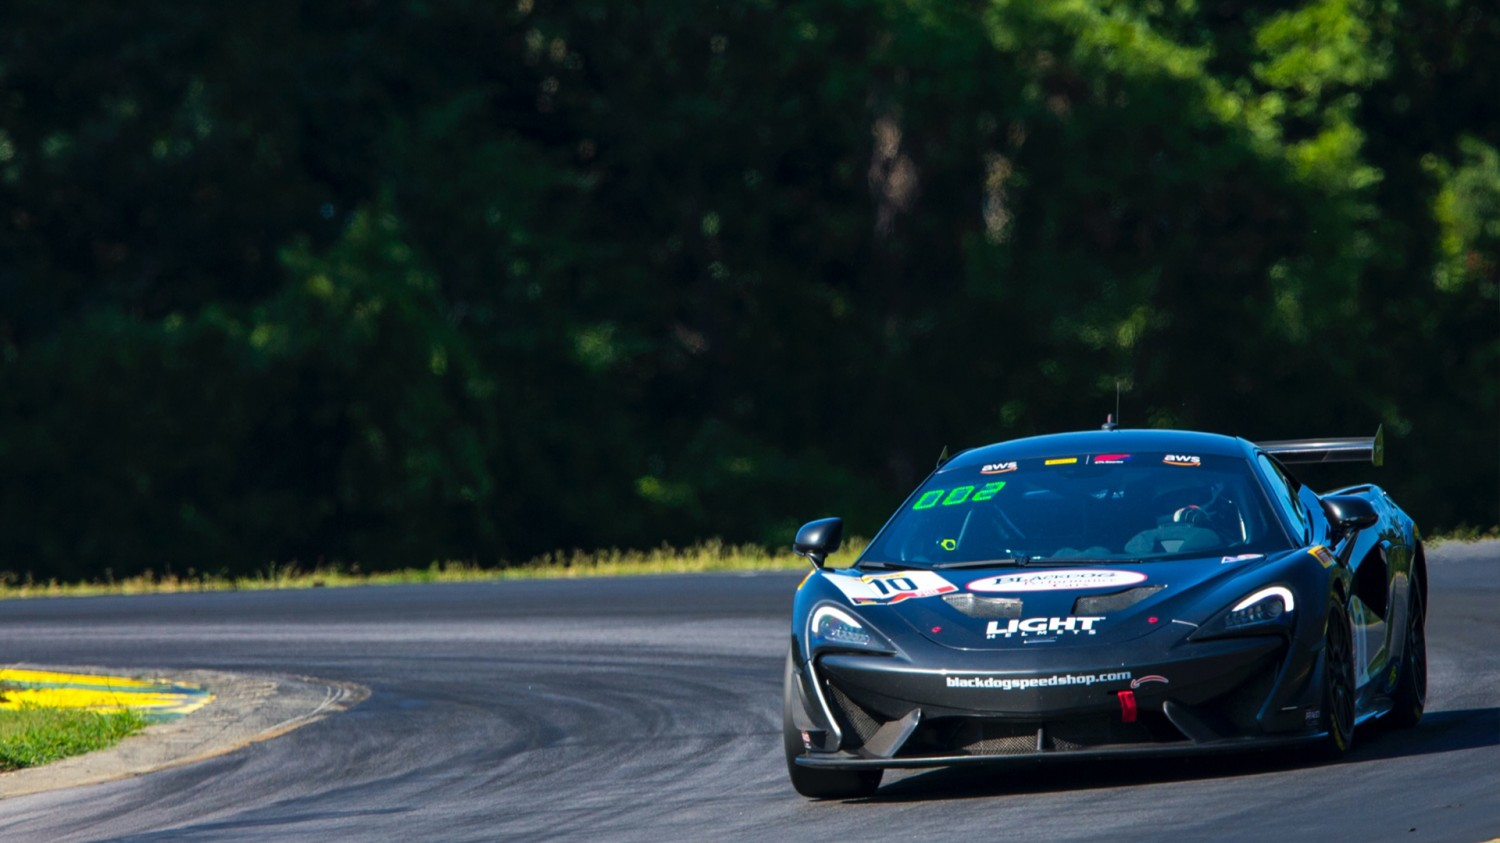 REBOUND! Cooper Powers Back for GT4 Sprint Victory at VIR